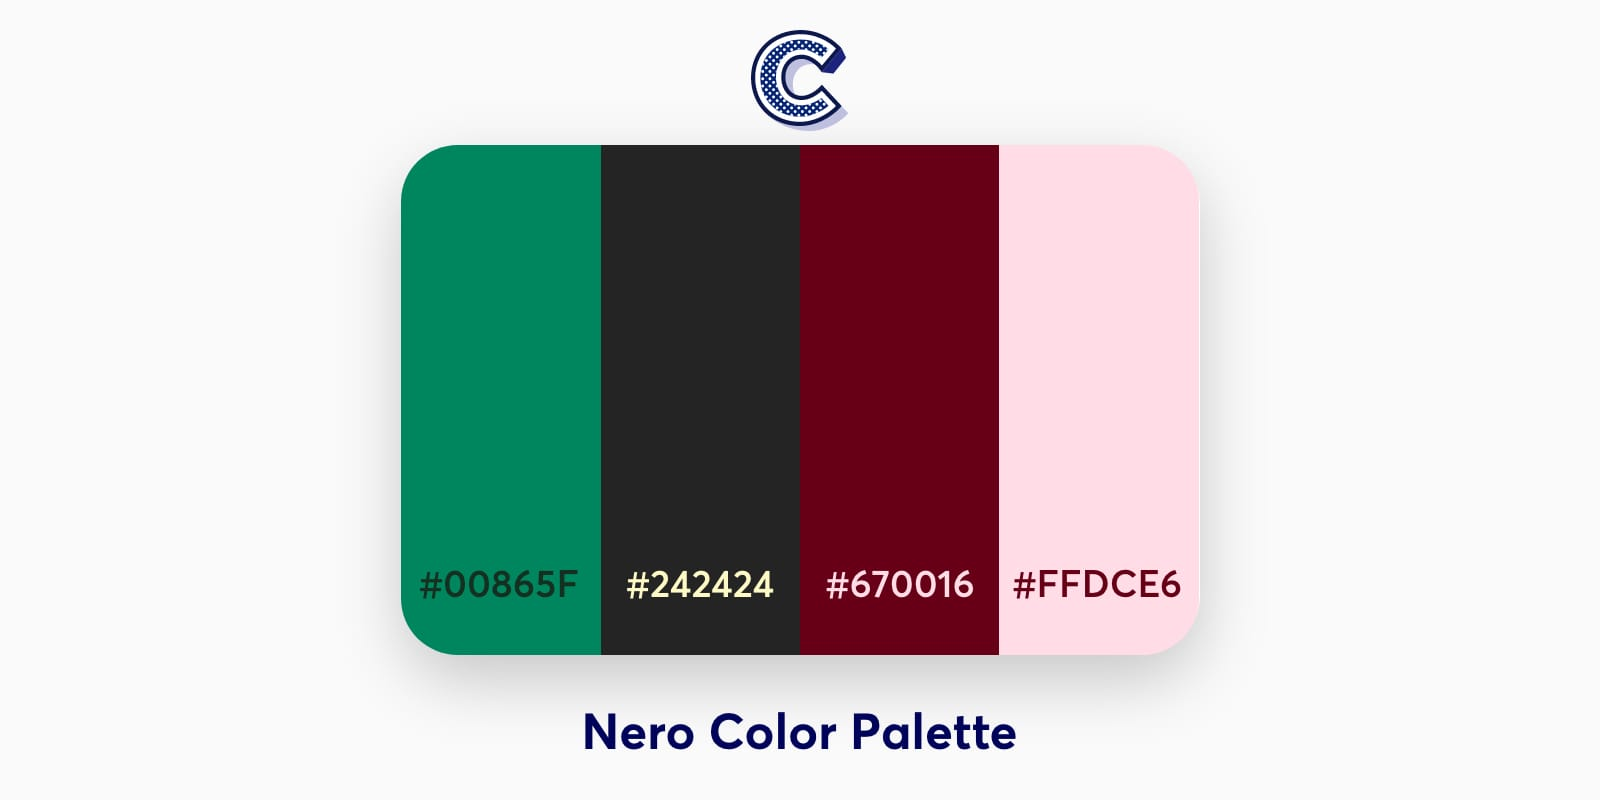 the featured image of nero color palette